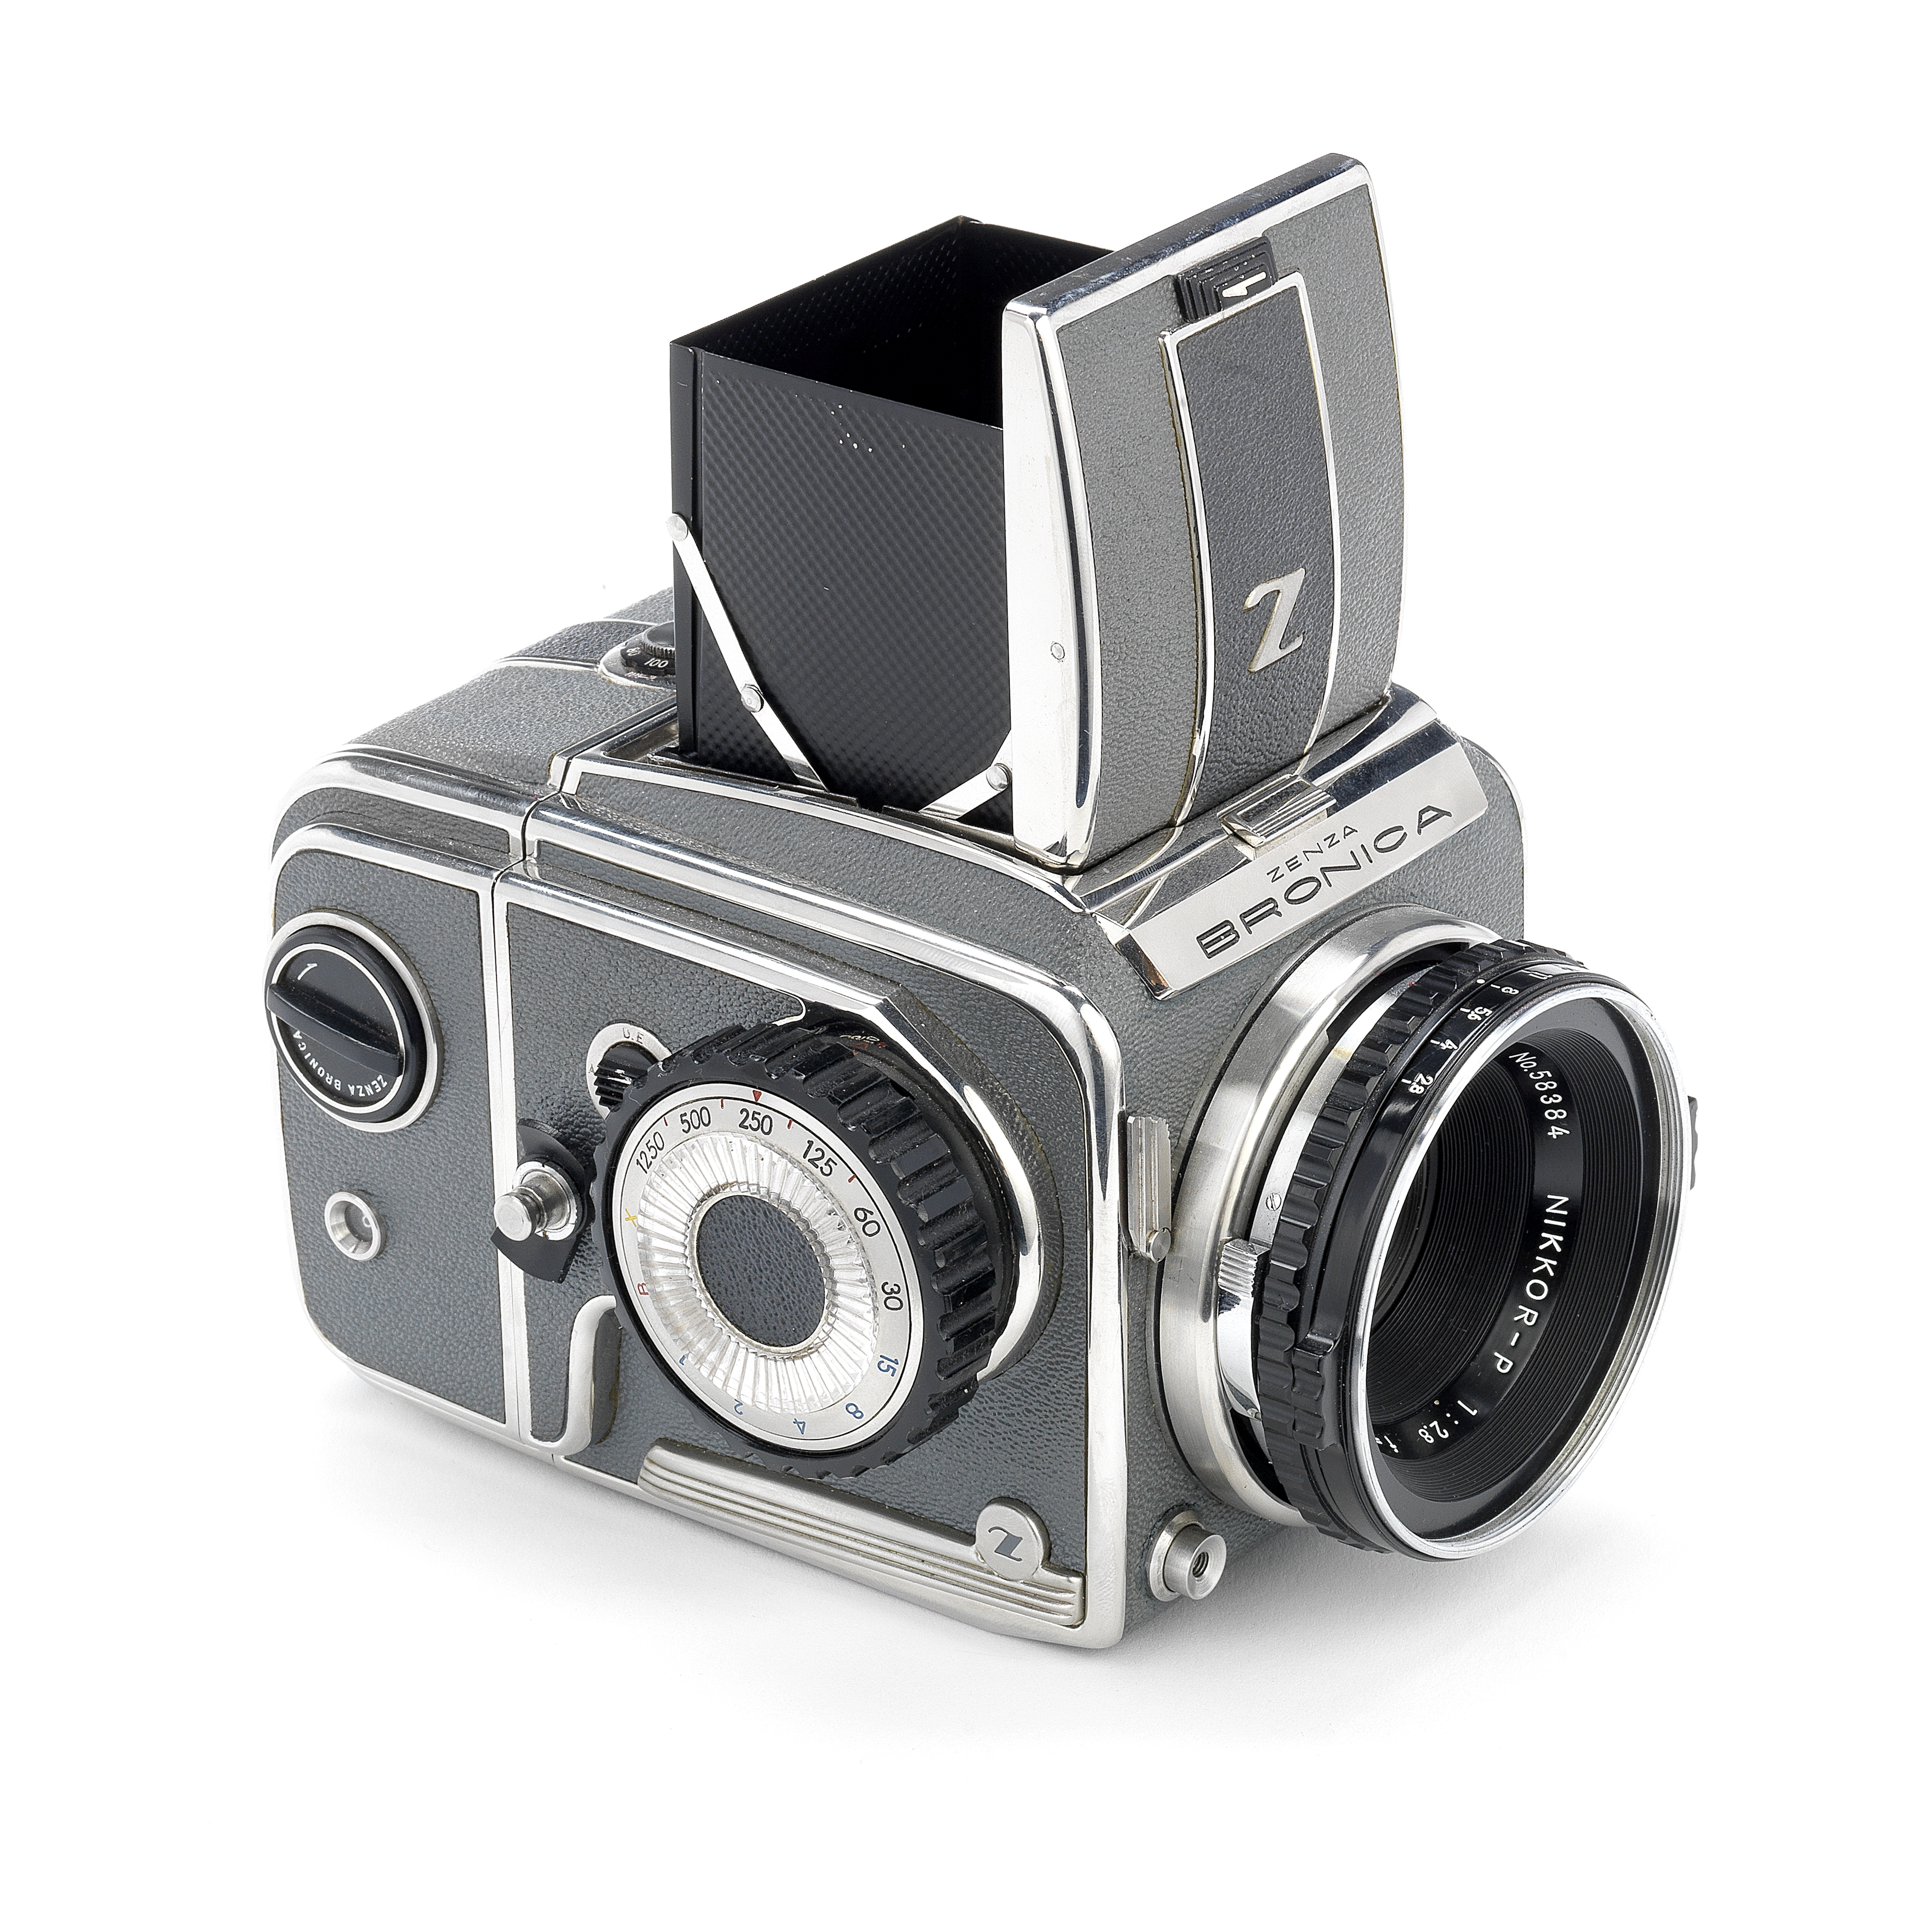 A BRONICA delux Type 2 SLR camera,